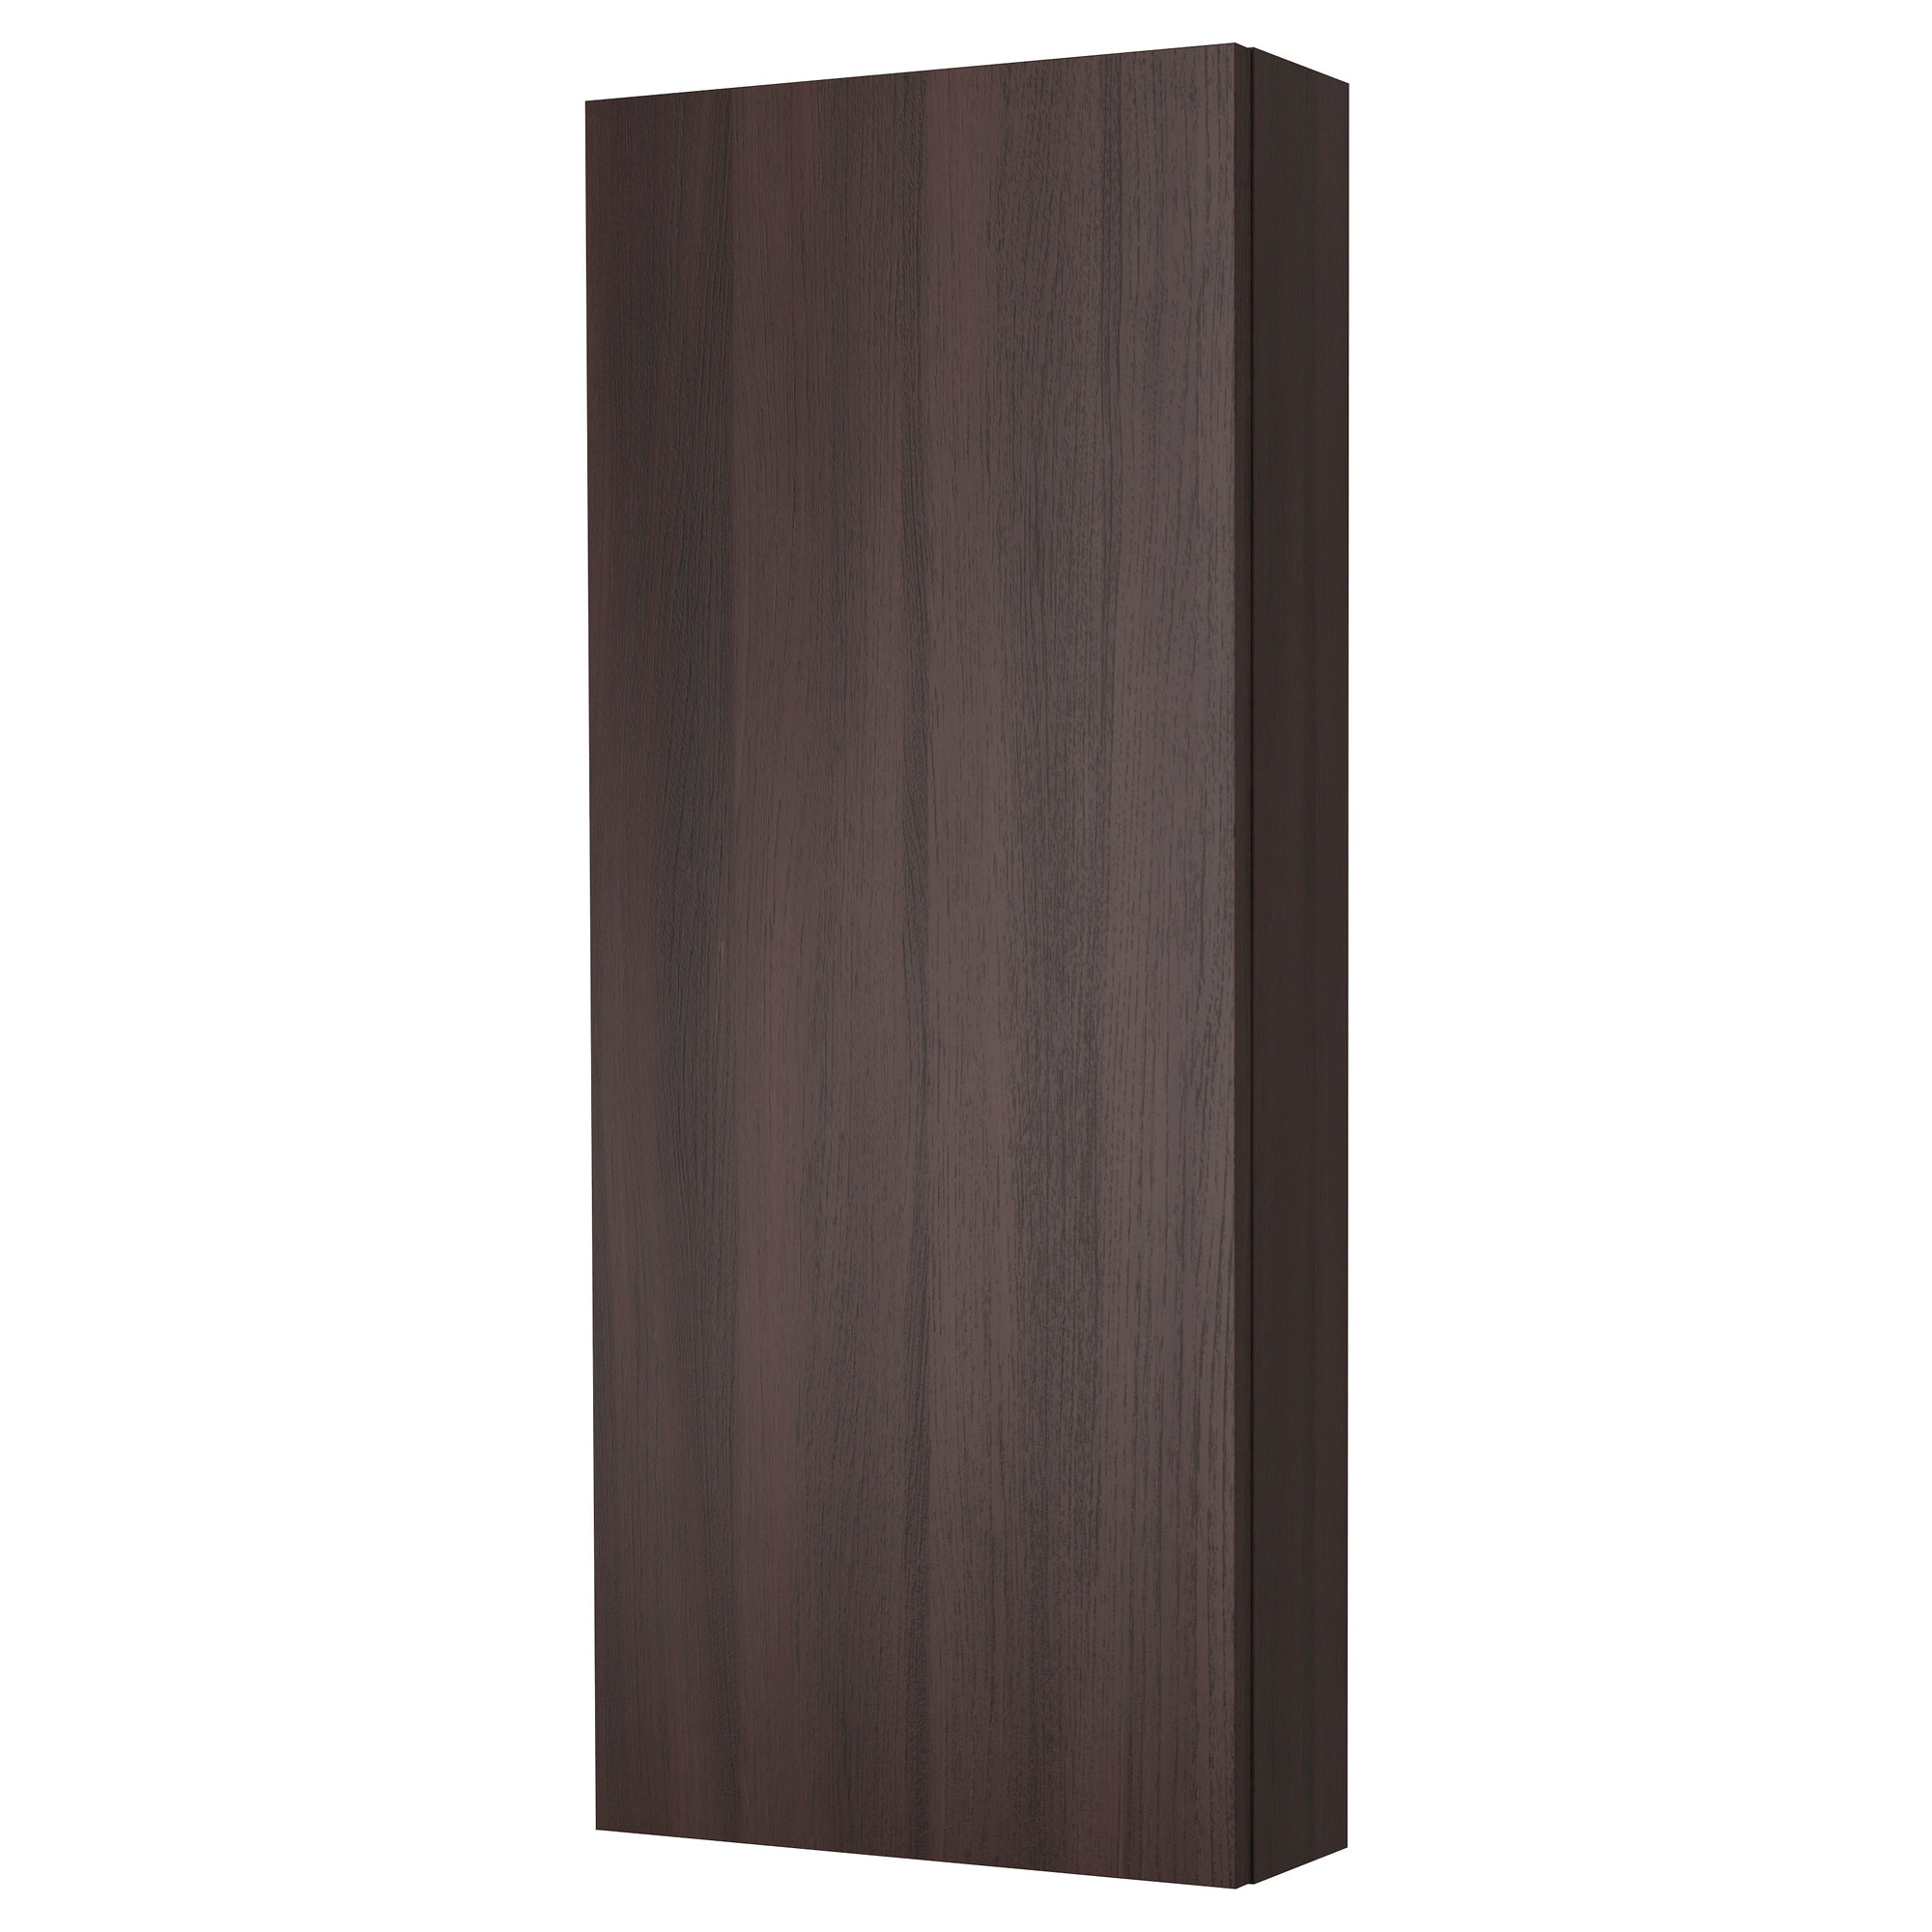 GODMORGON Wall Cabinet With 1 Door   Black Brown   IKEA Part 78